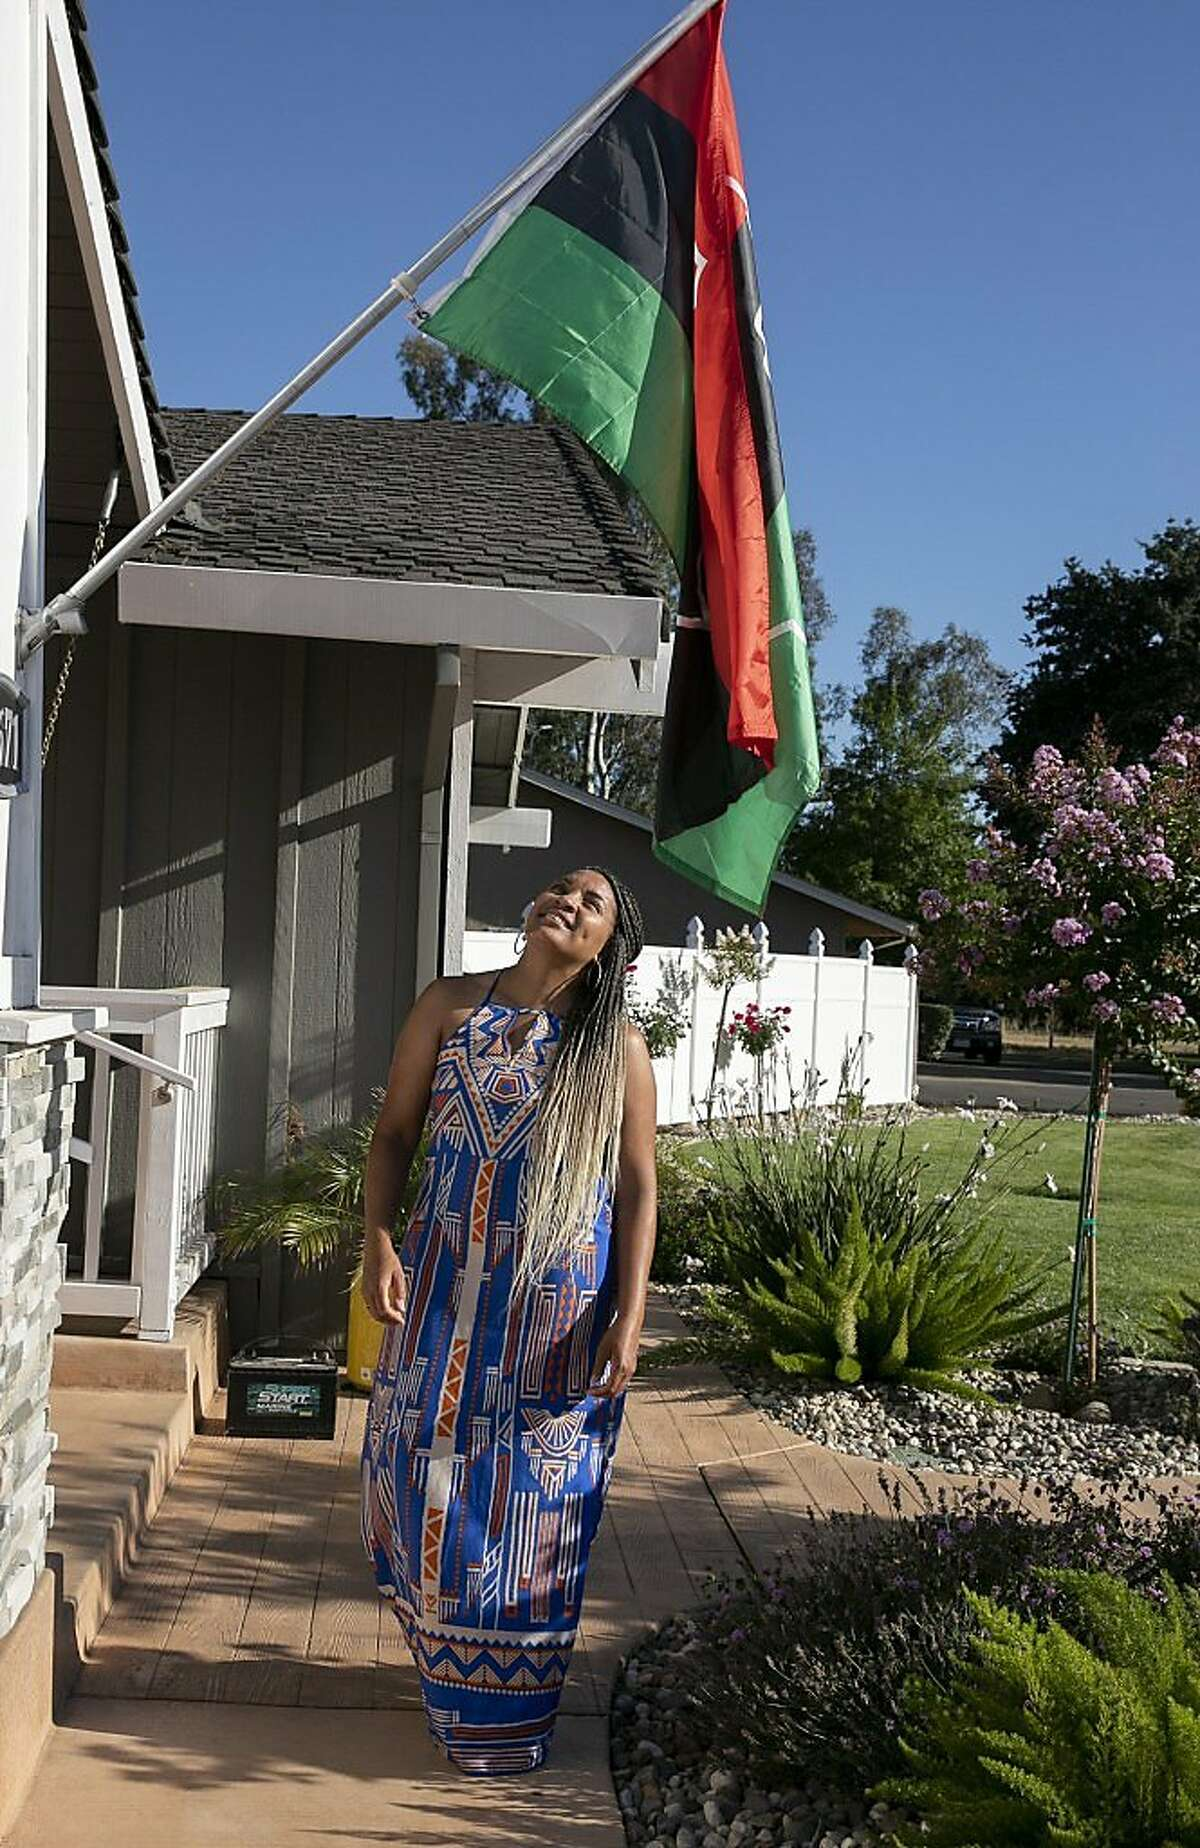 Sharie Wilson stands below the Pan African flag outside of her Elk Grove home on June 22, 2020. Wilson says that she raised the flag to celebrate Juneteenth as a way to help educate her neighbors about the holiday.